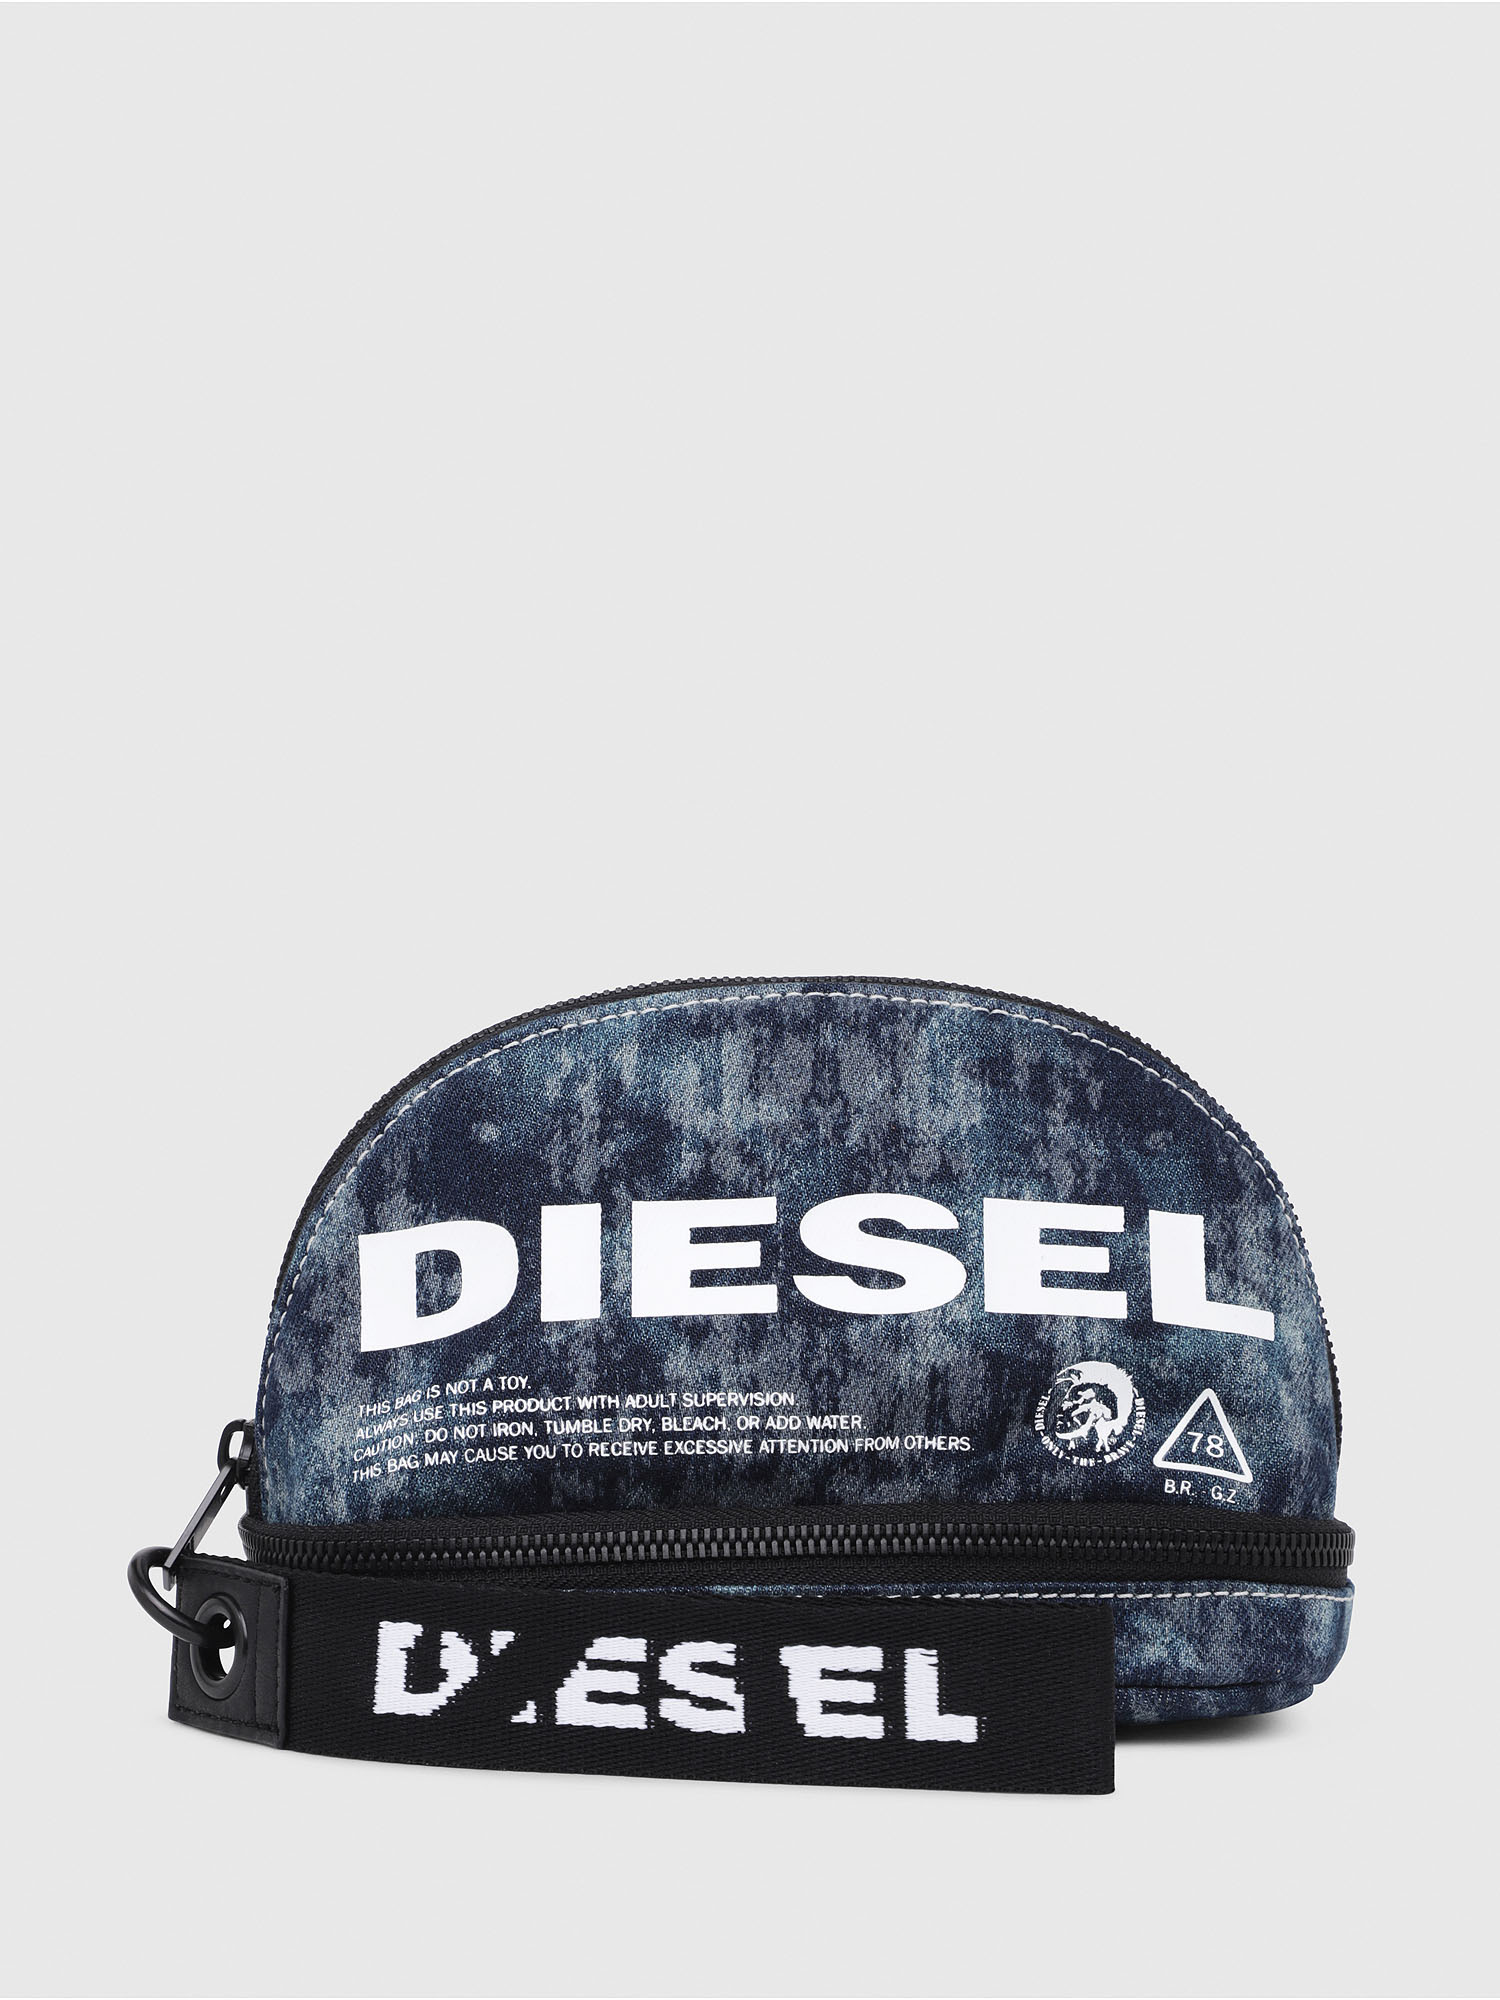 Diesel - NEW D-EASY,  - Bijoux and Gadgets - Image 1